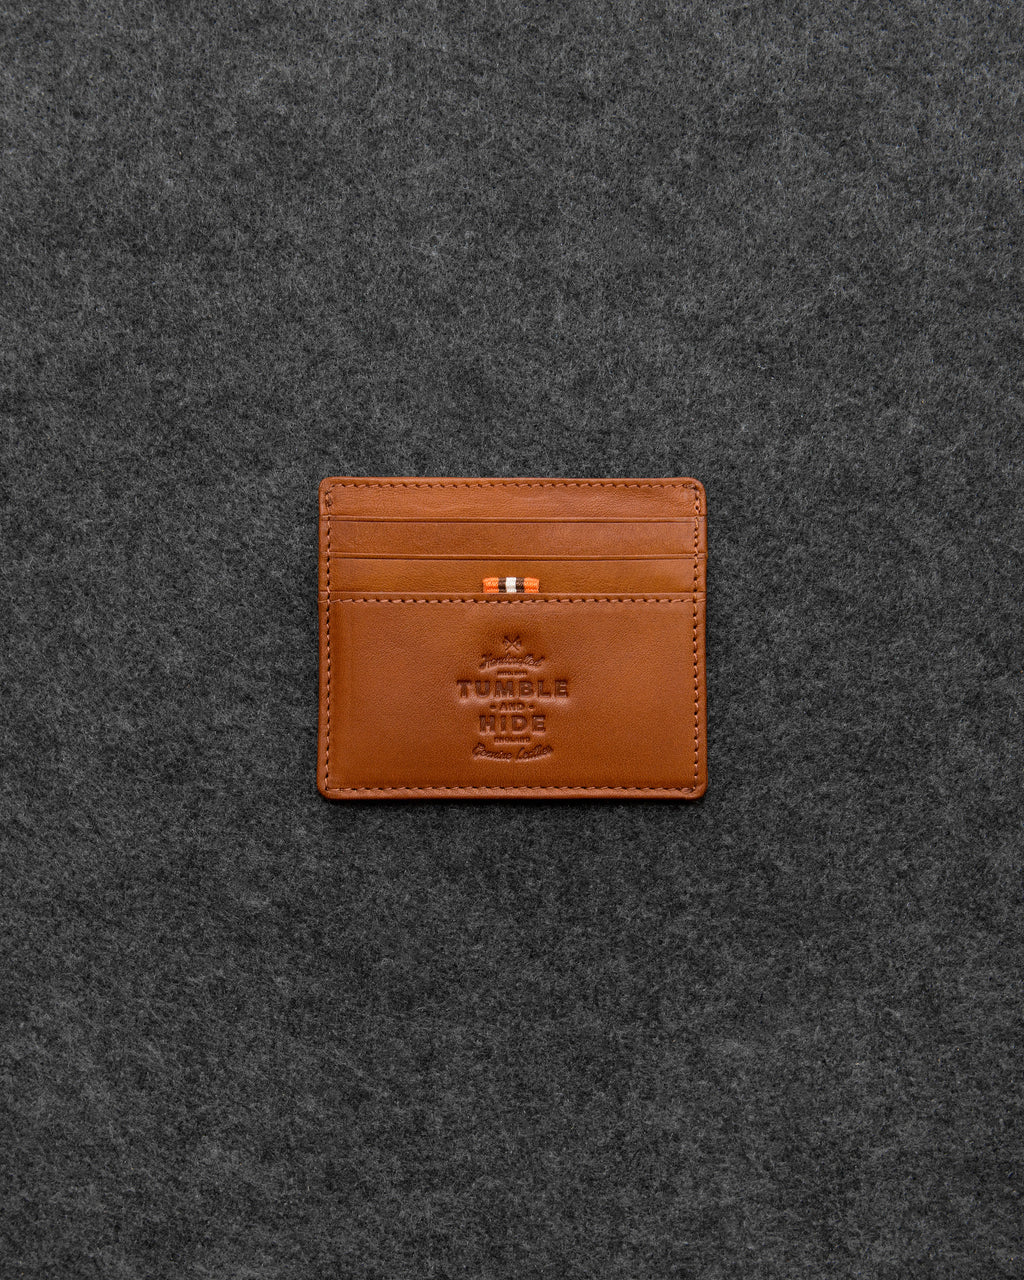 Tudor Leather Slim Credit Card Holder